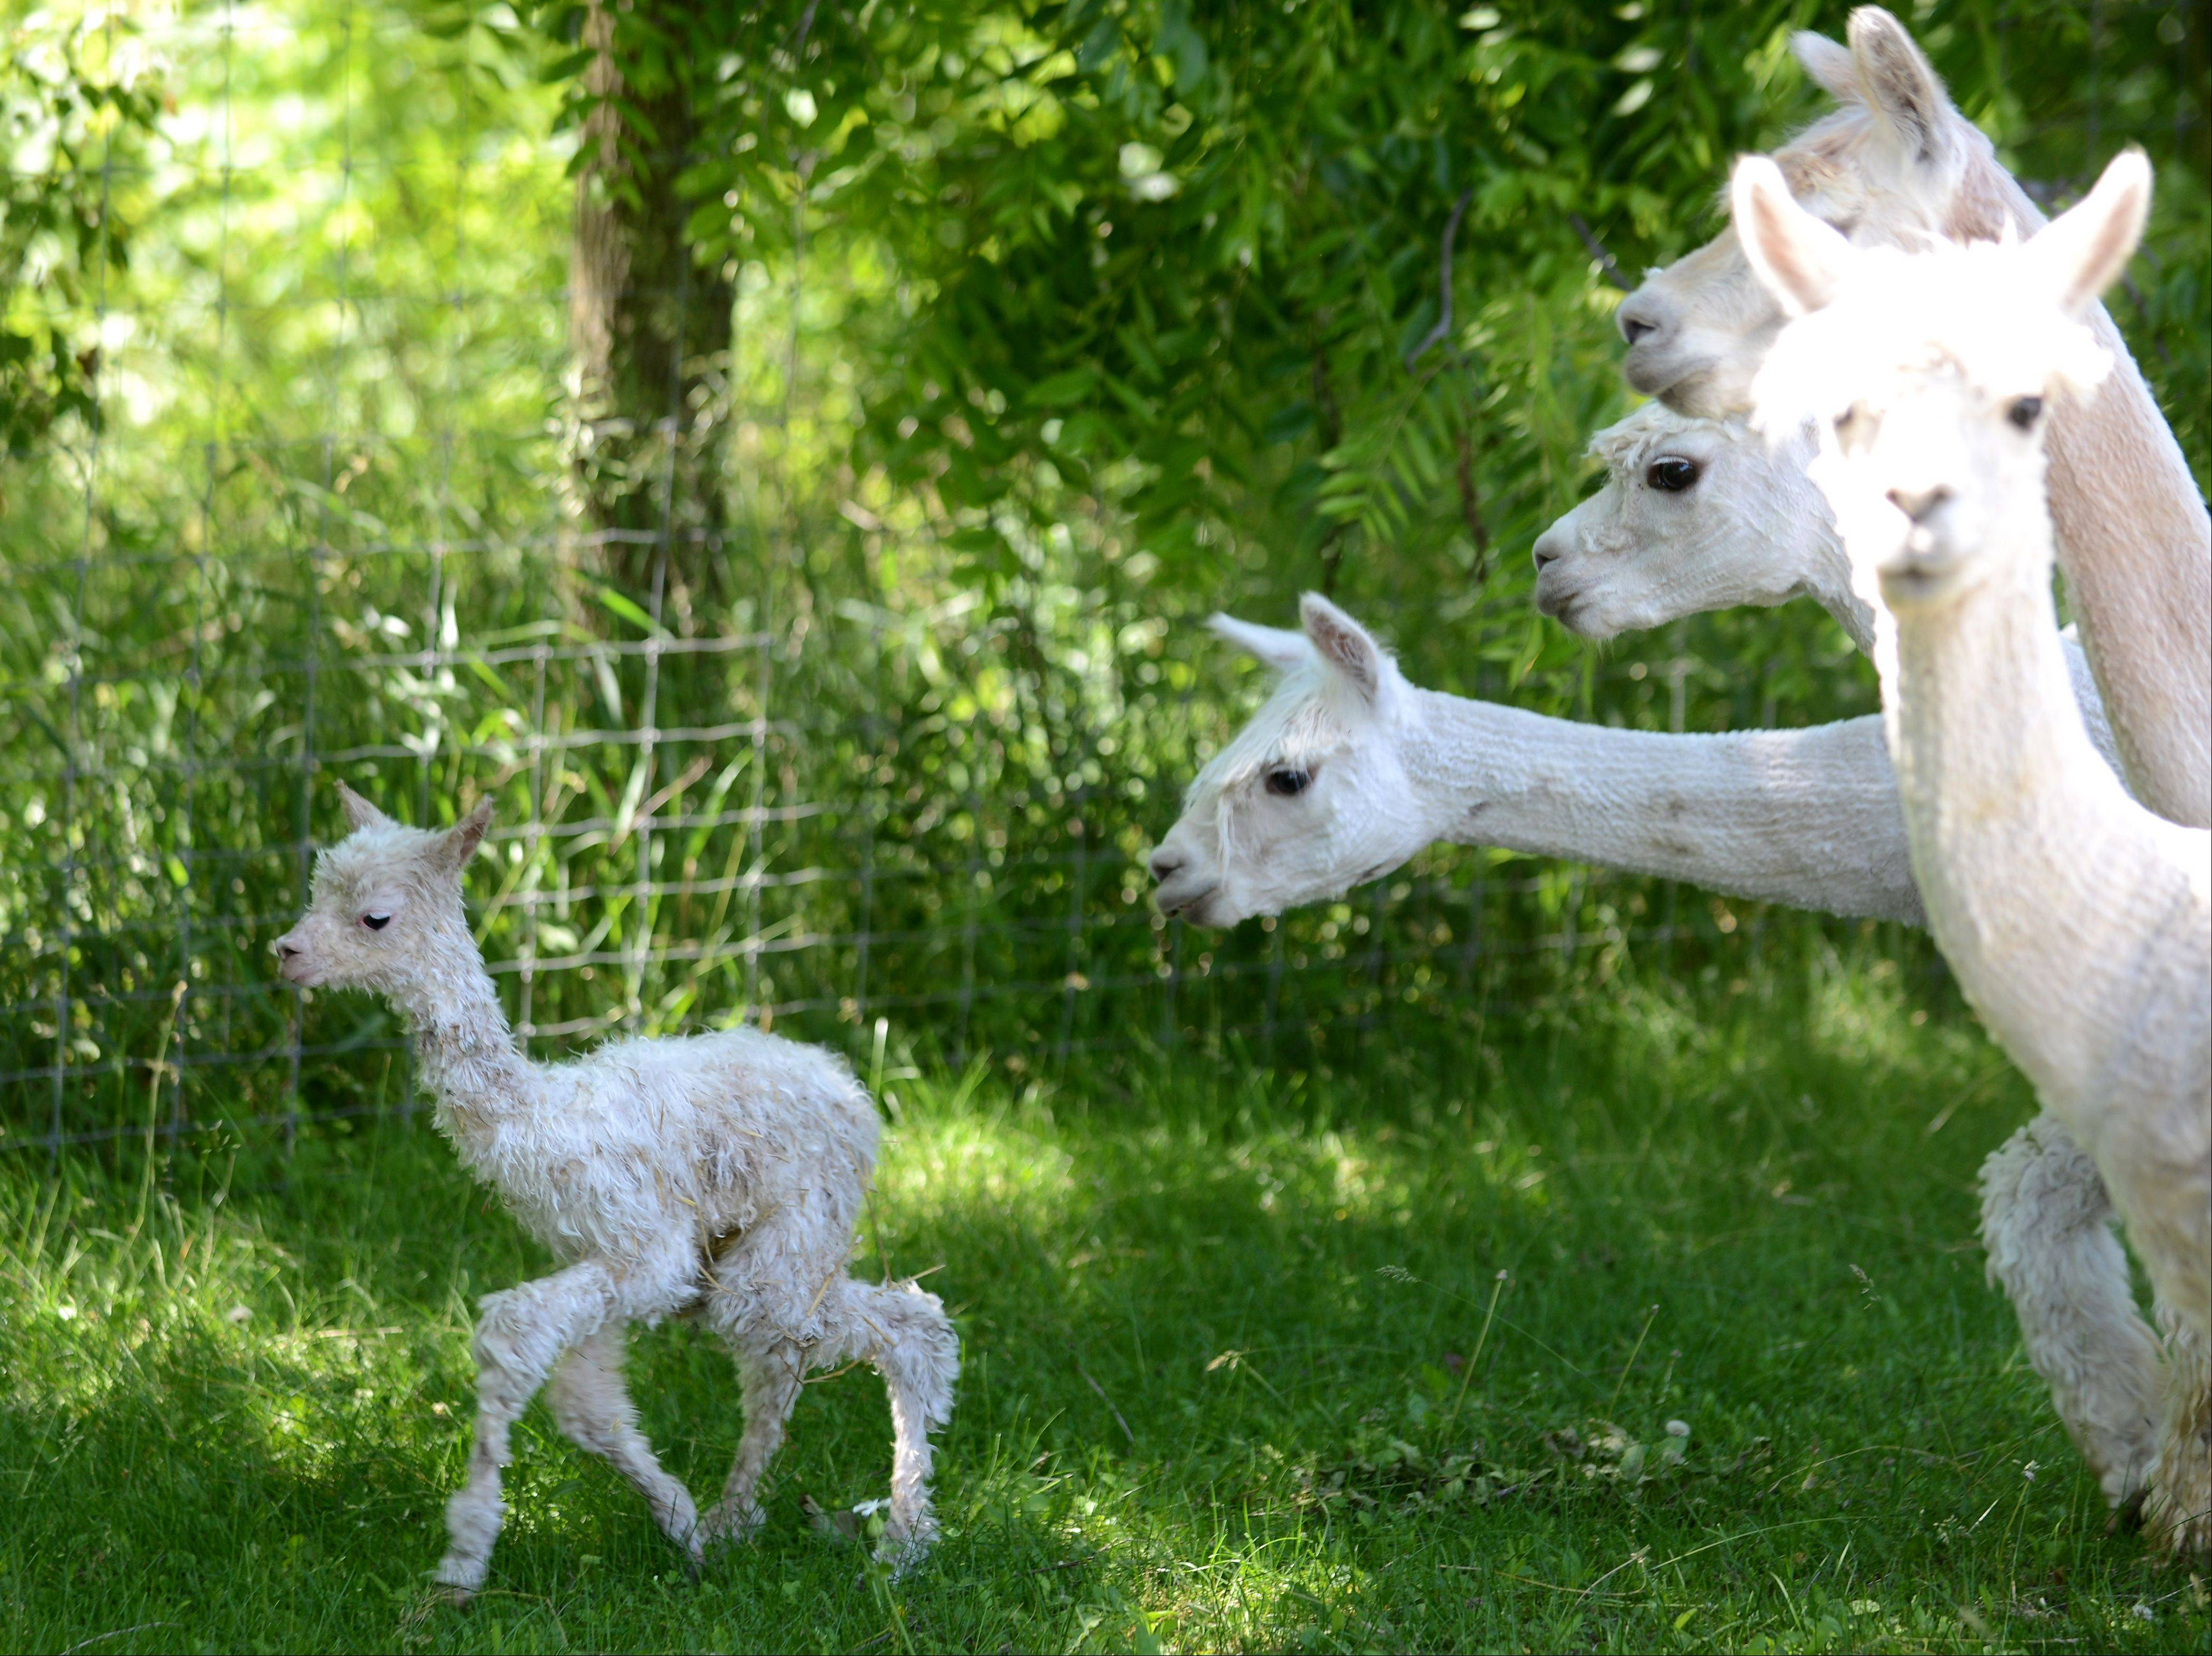 A baby alpaca, just a few hours old, is the center of attention Tuesday at Waldron Grove Alpacas in Campton Hills.